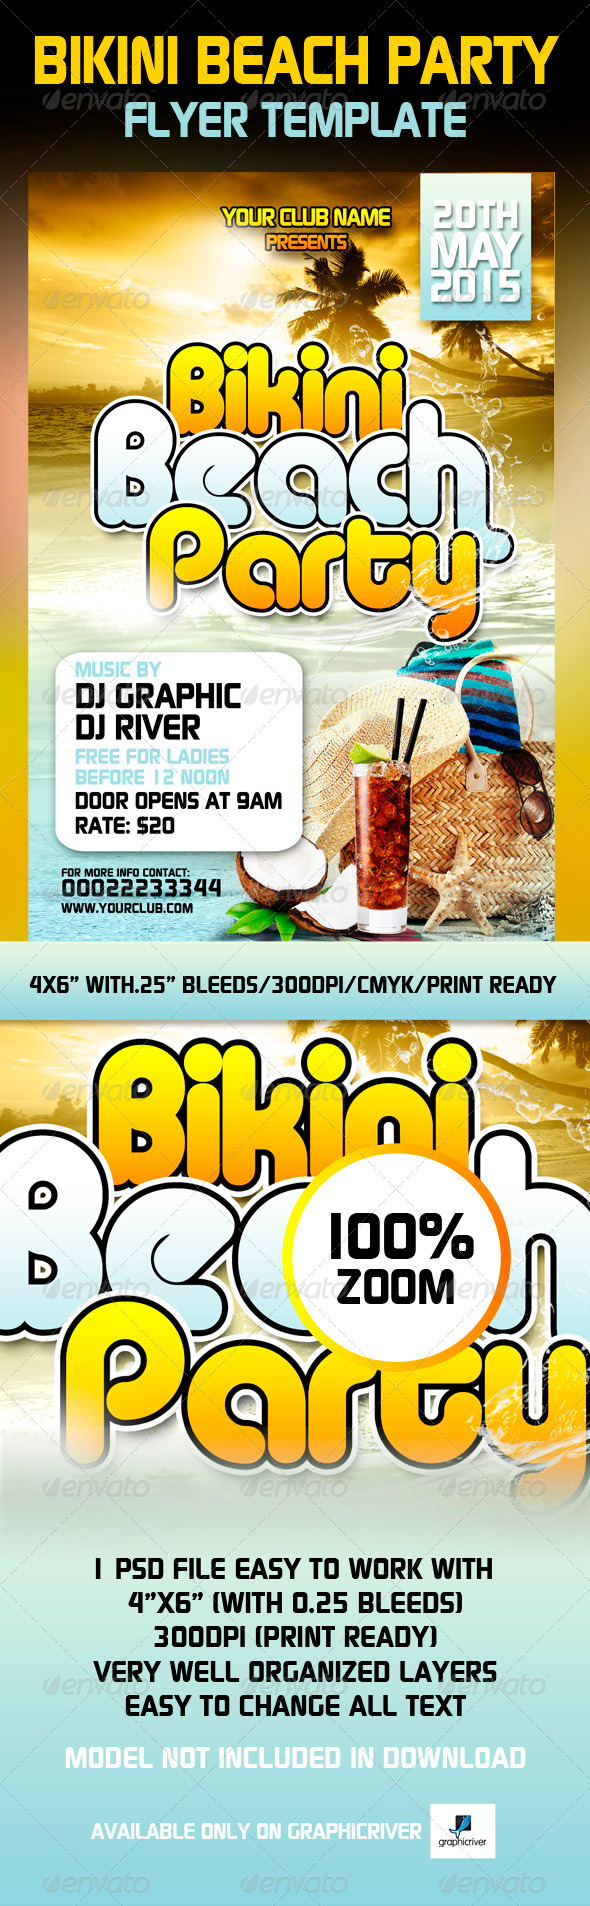 Bikini Beach Party Flyer Template - Clubs & Parties Events